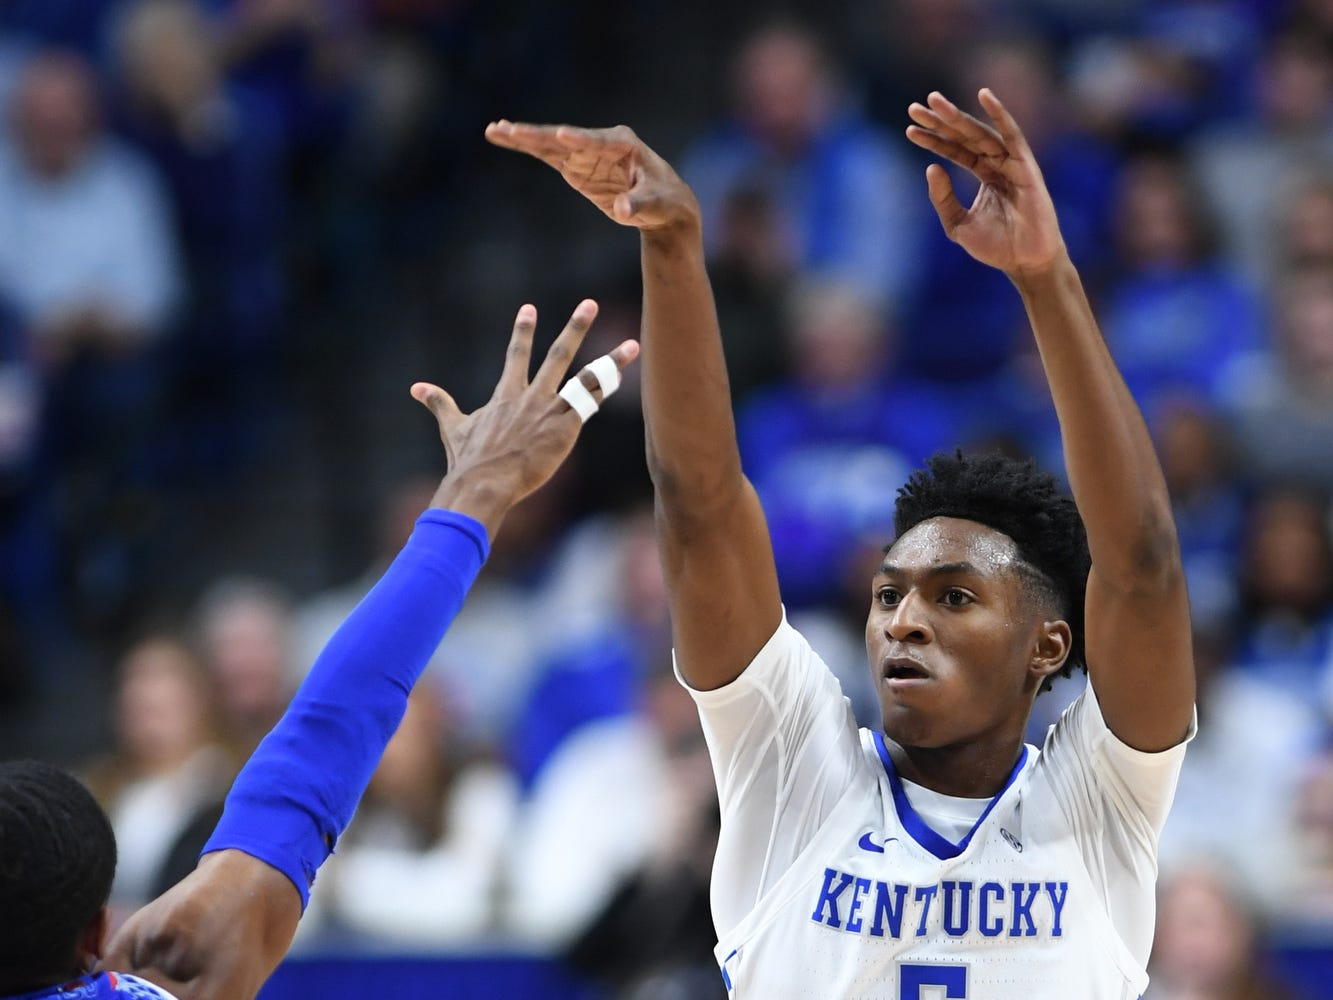 UK guard Immanuel Quickley shoots during the University of Kentucky men's basketball game against Tennessee State at Rupp Arena in Lexington, Kentucky on Friday, Nov. 23, 2018.